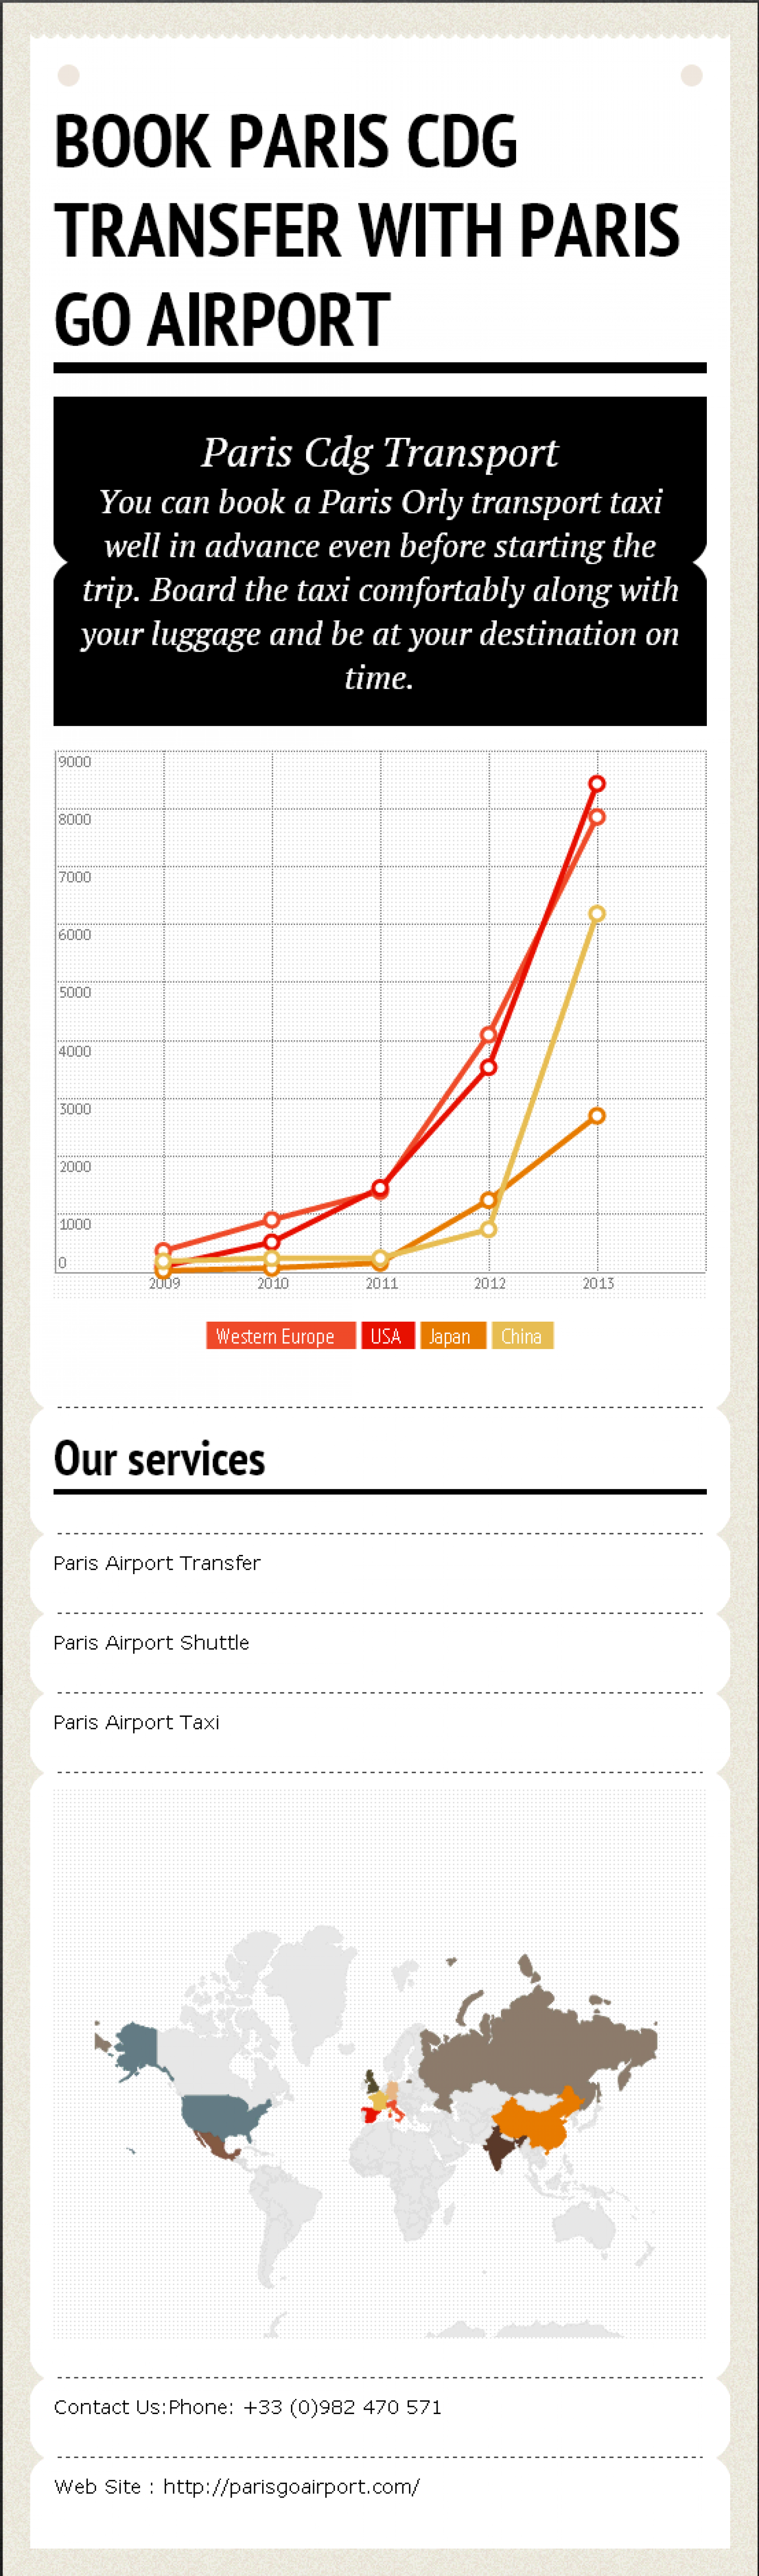 Book Paris Orly Transfer With Paris Go Airport Infographic